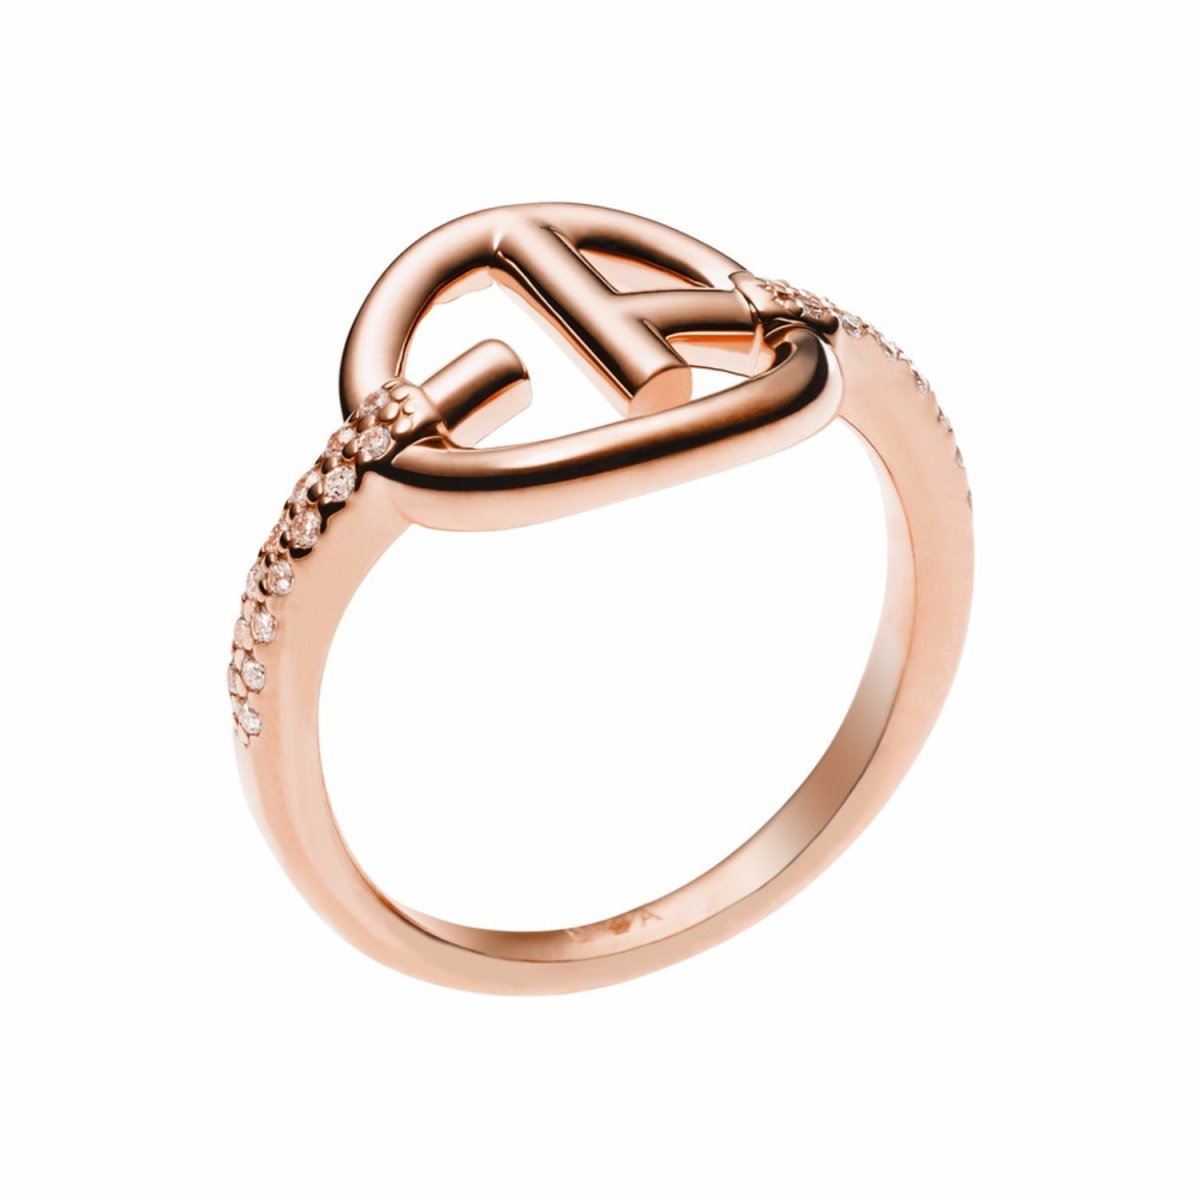 Emporio Armani EG3200221 Rose Gold Plated Silver Ring - Goldy Jewelry Store